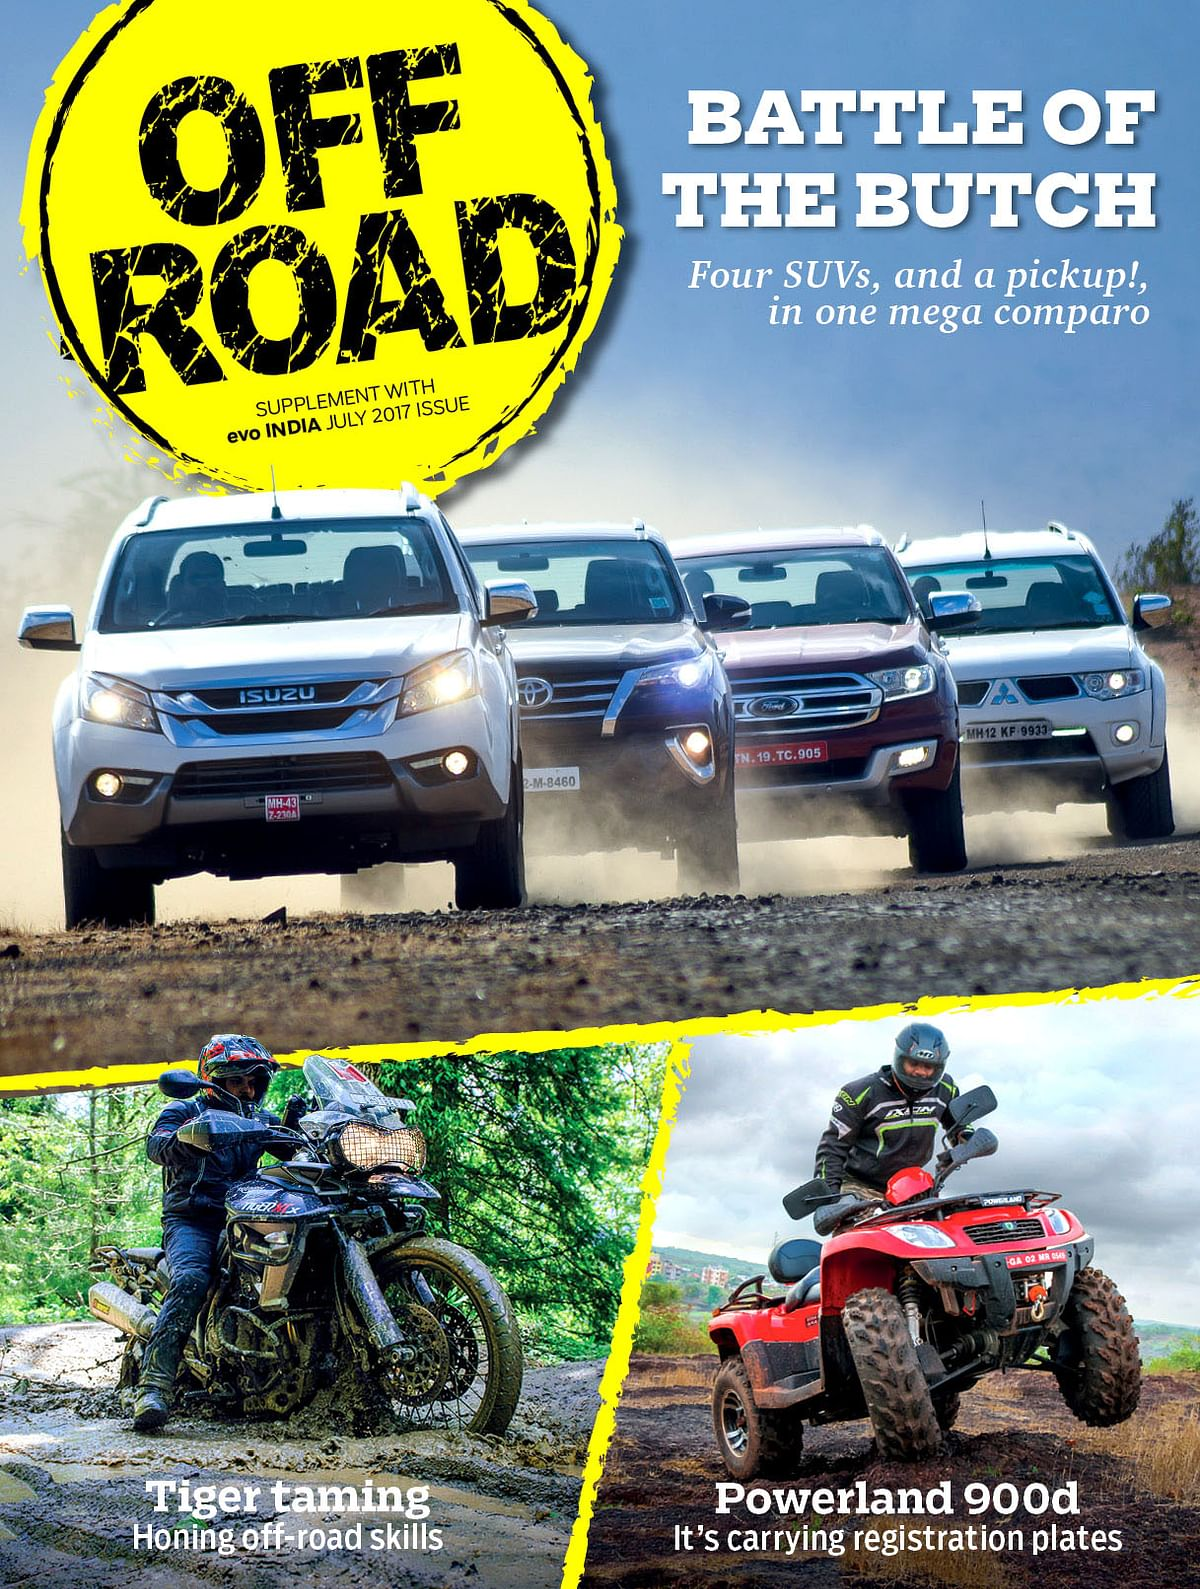 evo India issue 46 – on sale now!